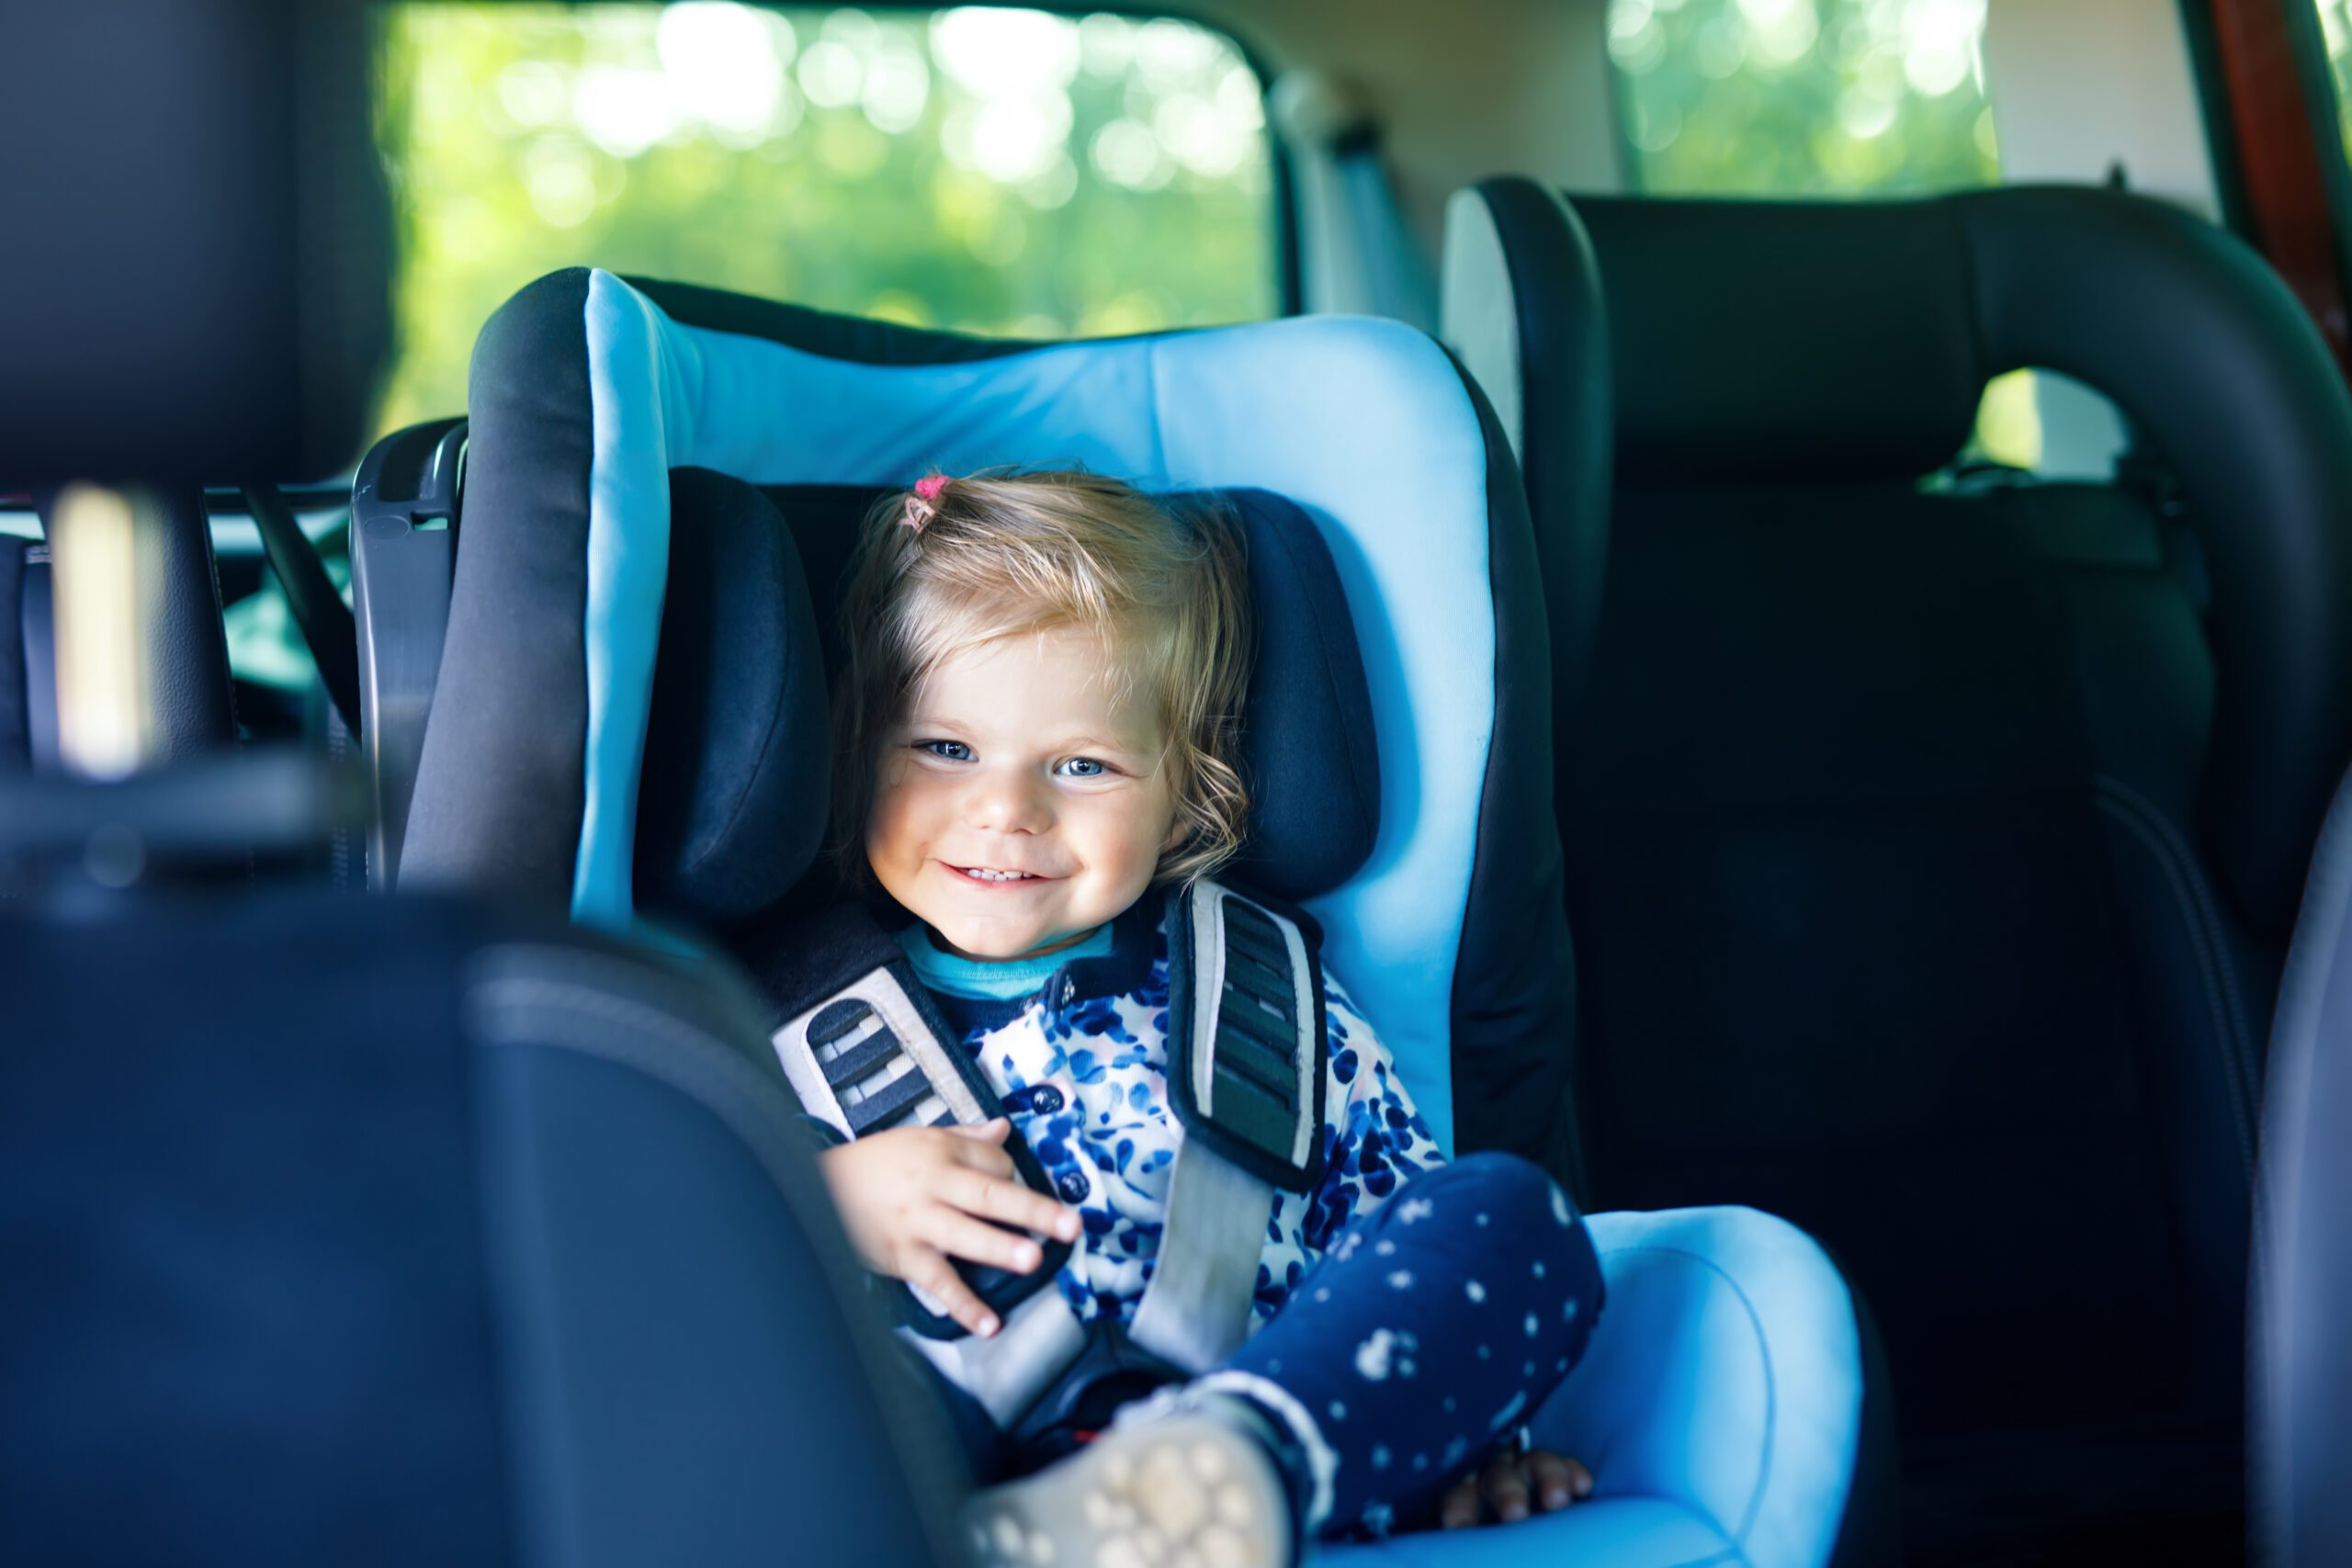 Children spend a lot of time getting places in vehicles. Find out how to travel safely with your kids in the car with these top three tips. #carsafety #parentingtips